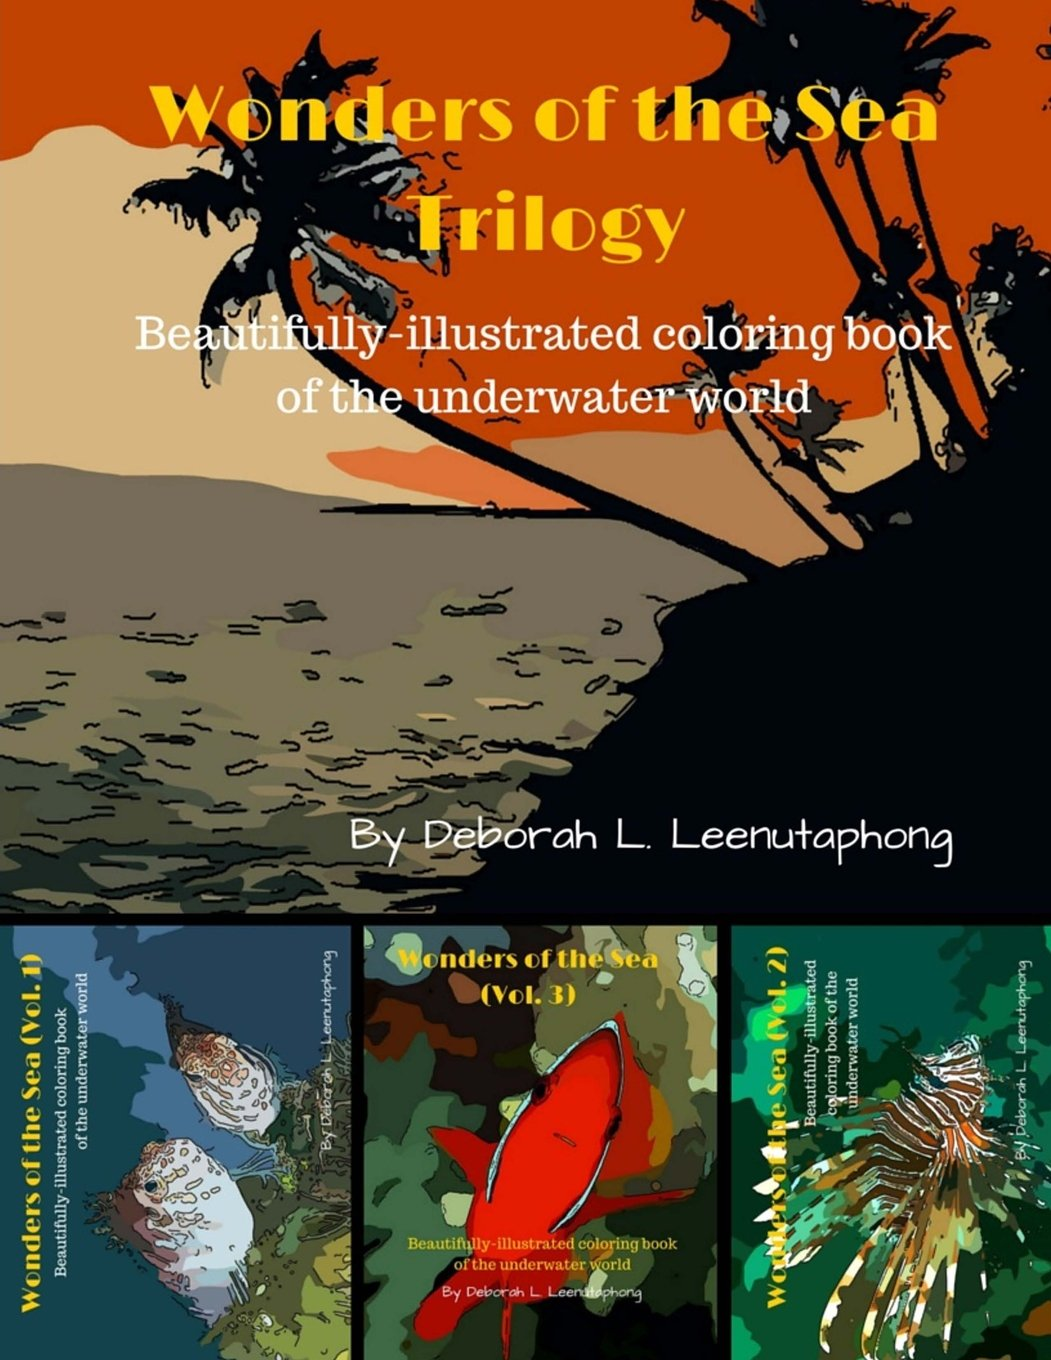 Wonders of the Sea Trilogy: Beautifully-illustrated coloring book of the underwater world (Volume 4) ebook